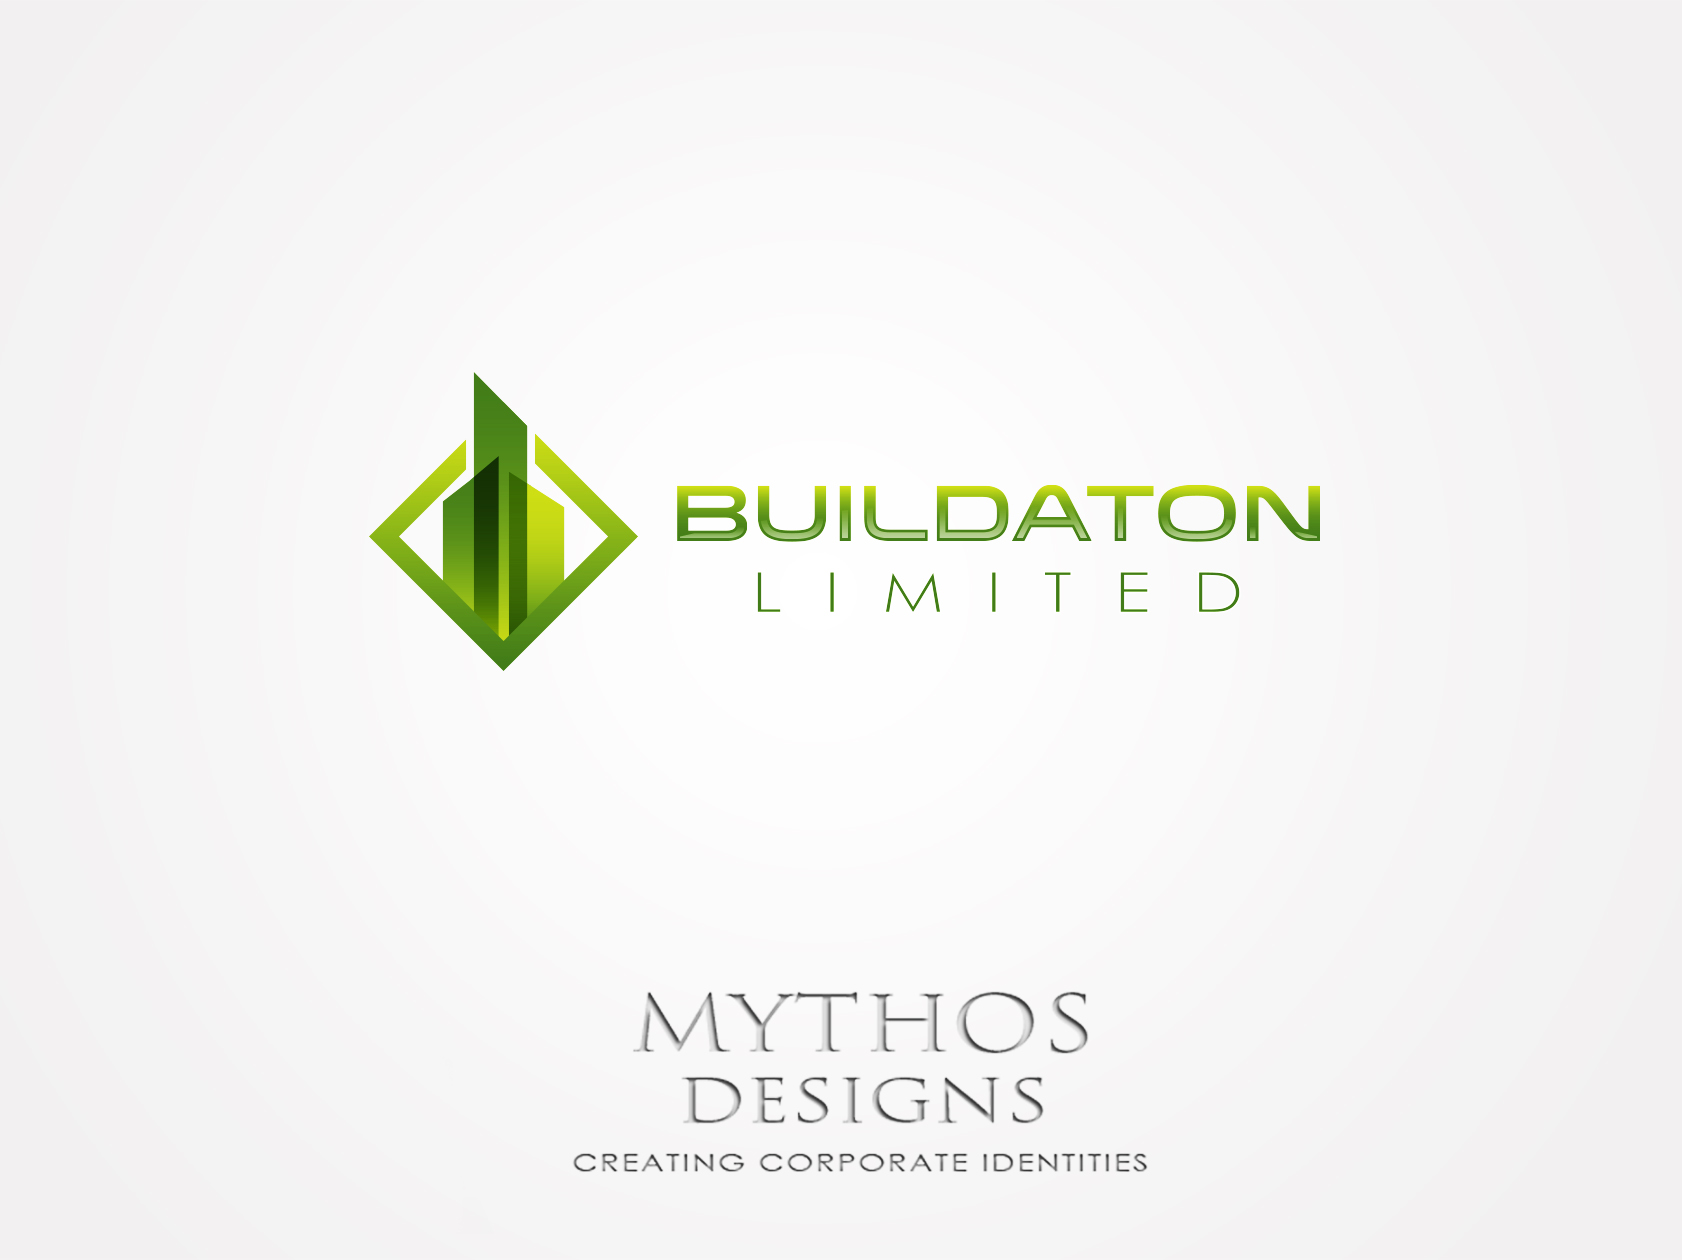 Logo Design by Mythos Designs - Entry No. 11 in the Logo Design Contest Artistic Logo Design for Buildaton Limited.